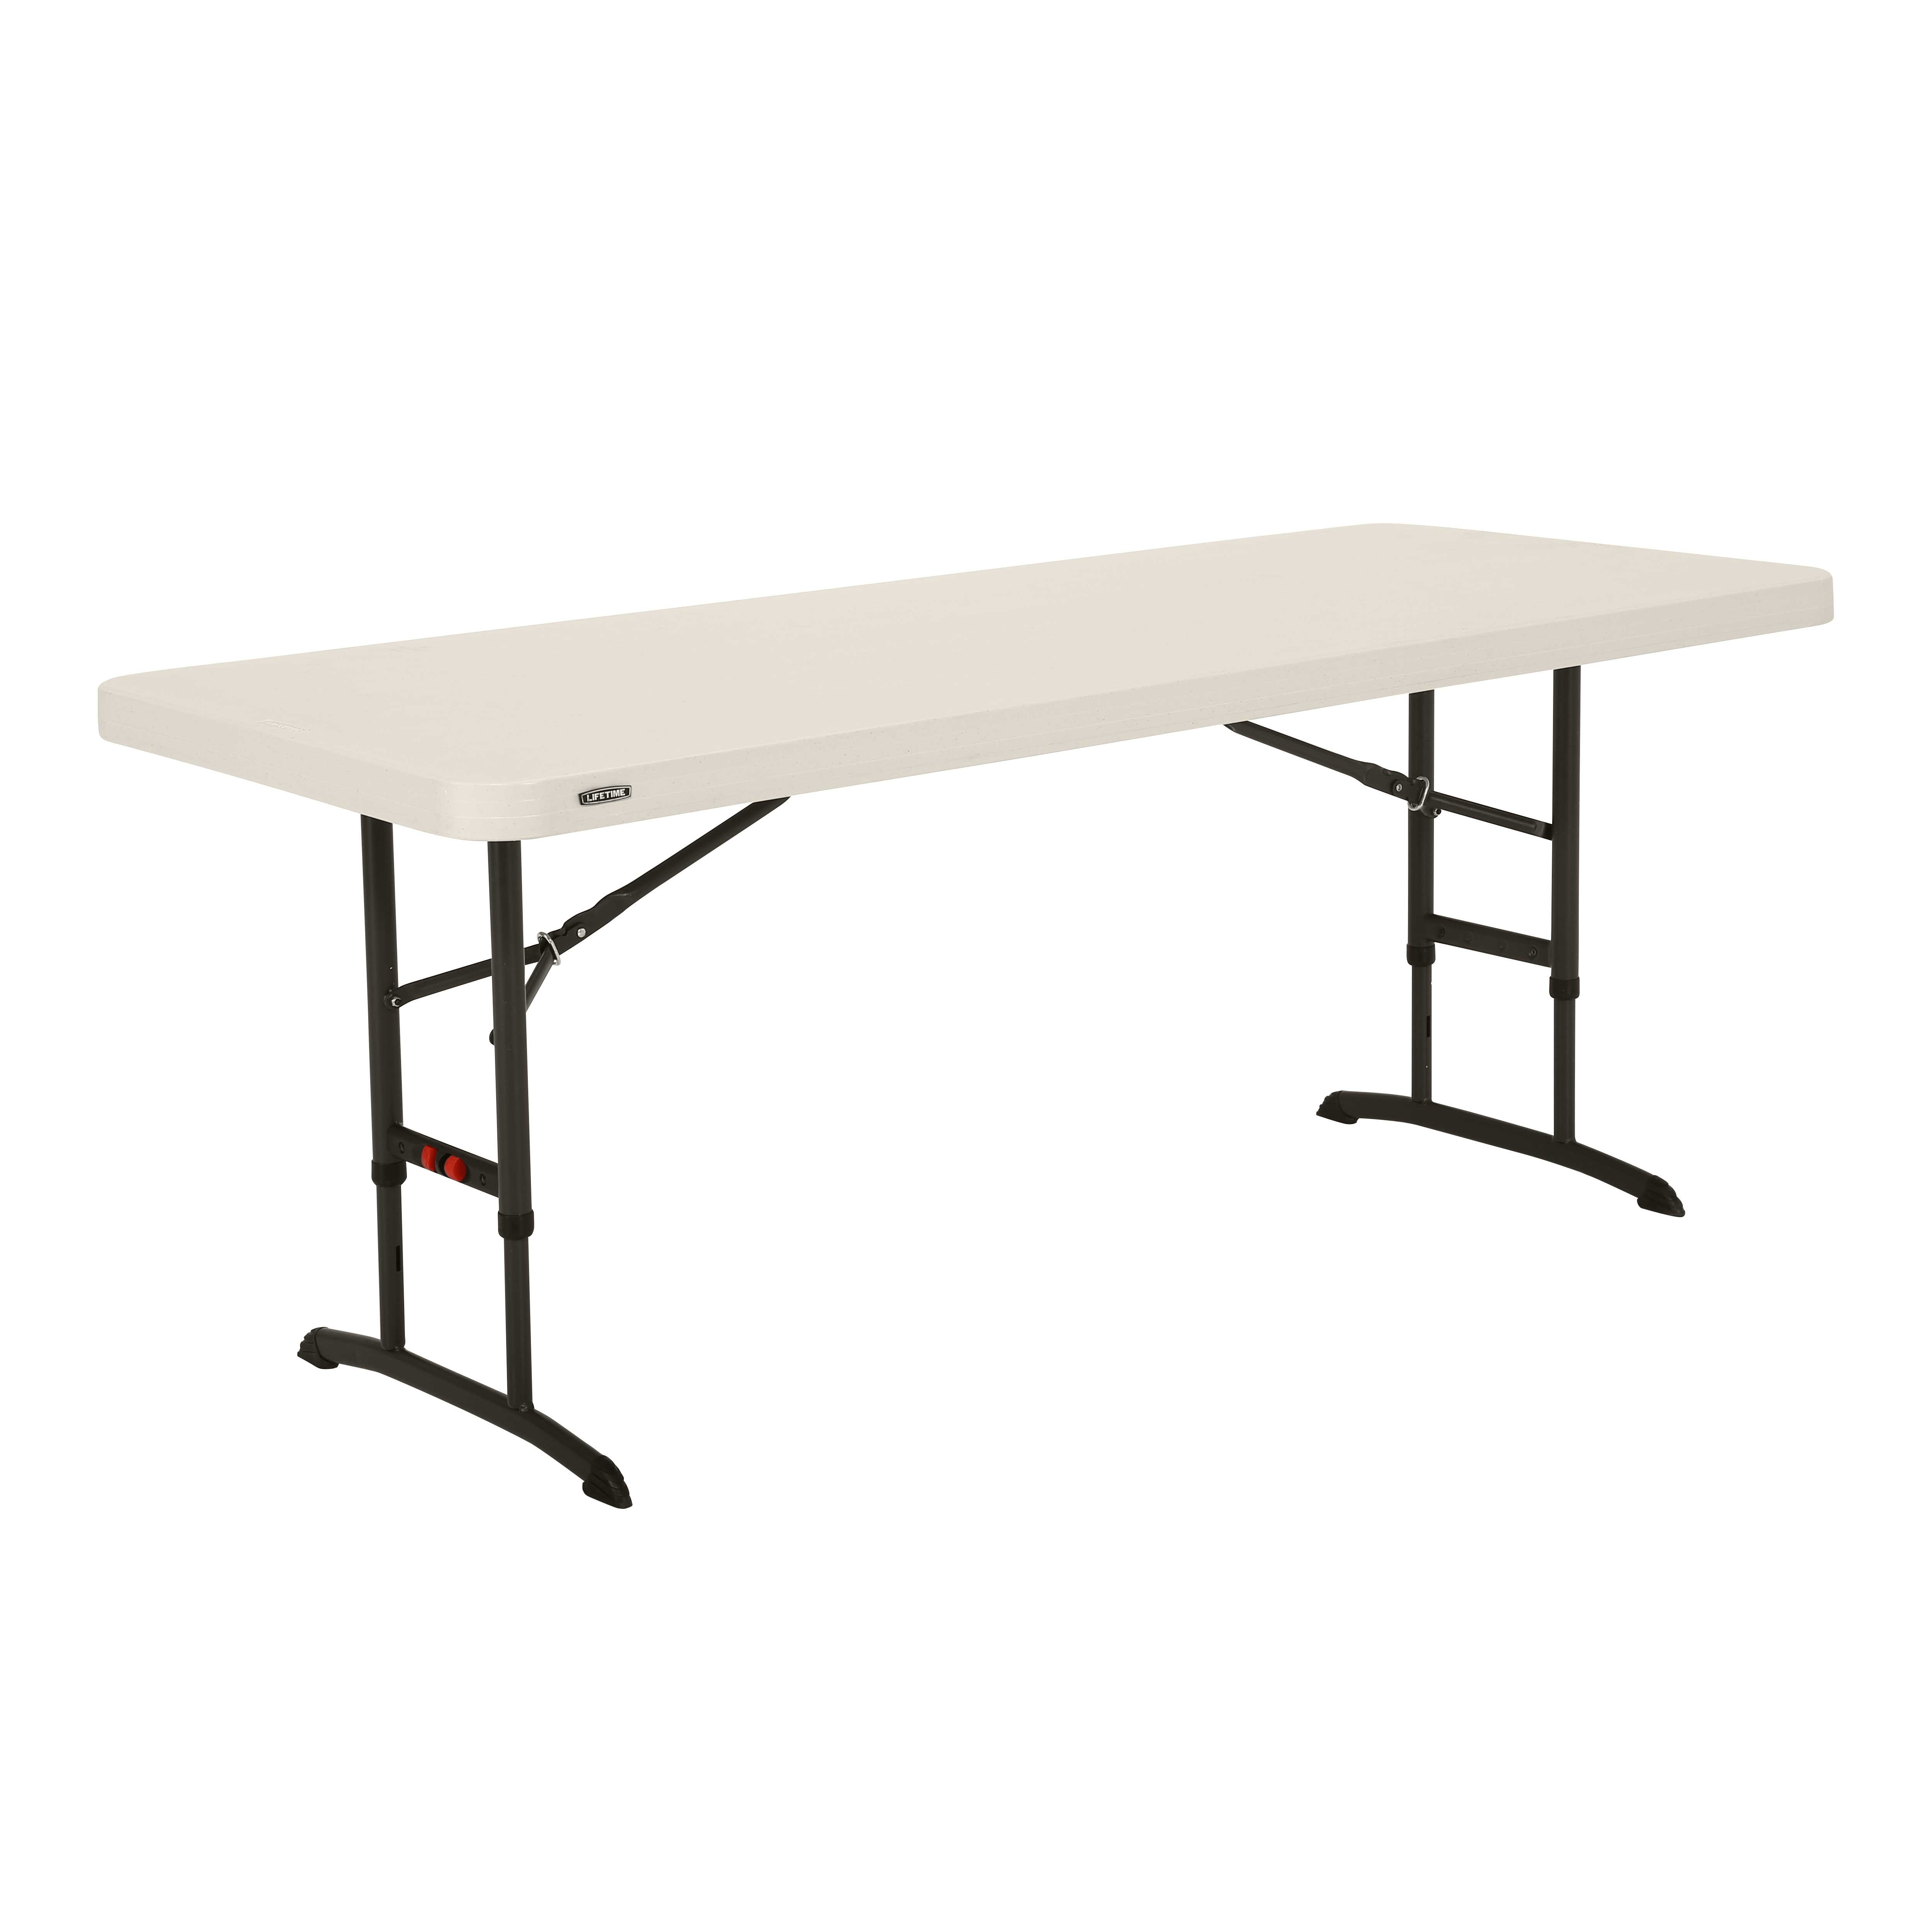 Pied Table Pliant Table Pliante Polyéthylène Table Pehd Rectangulaire Mobilier